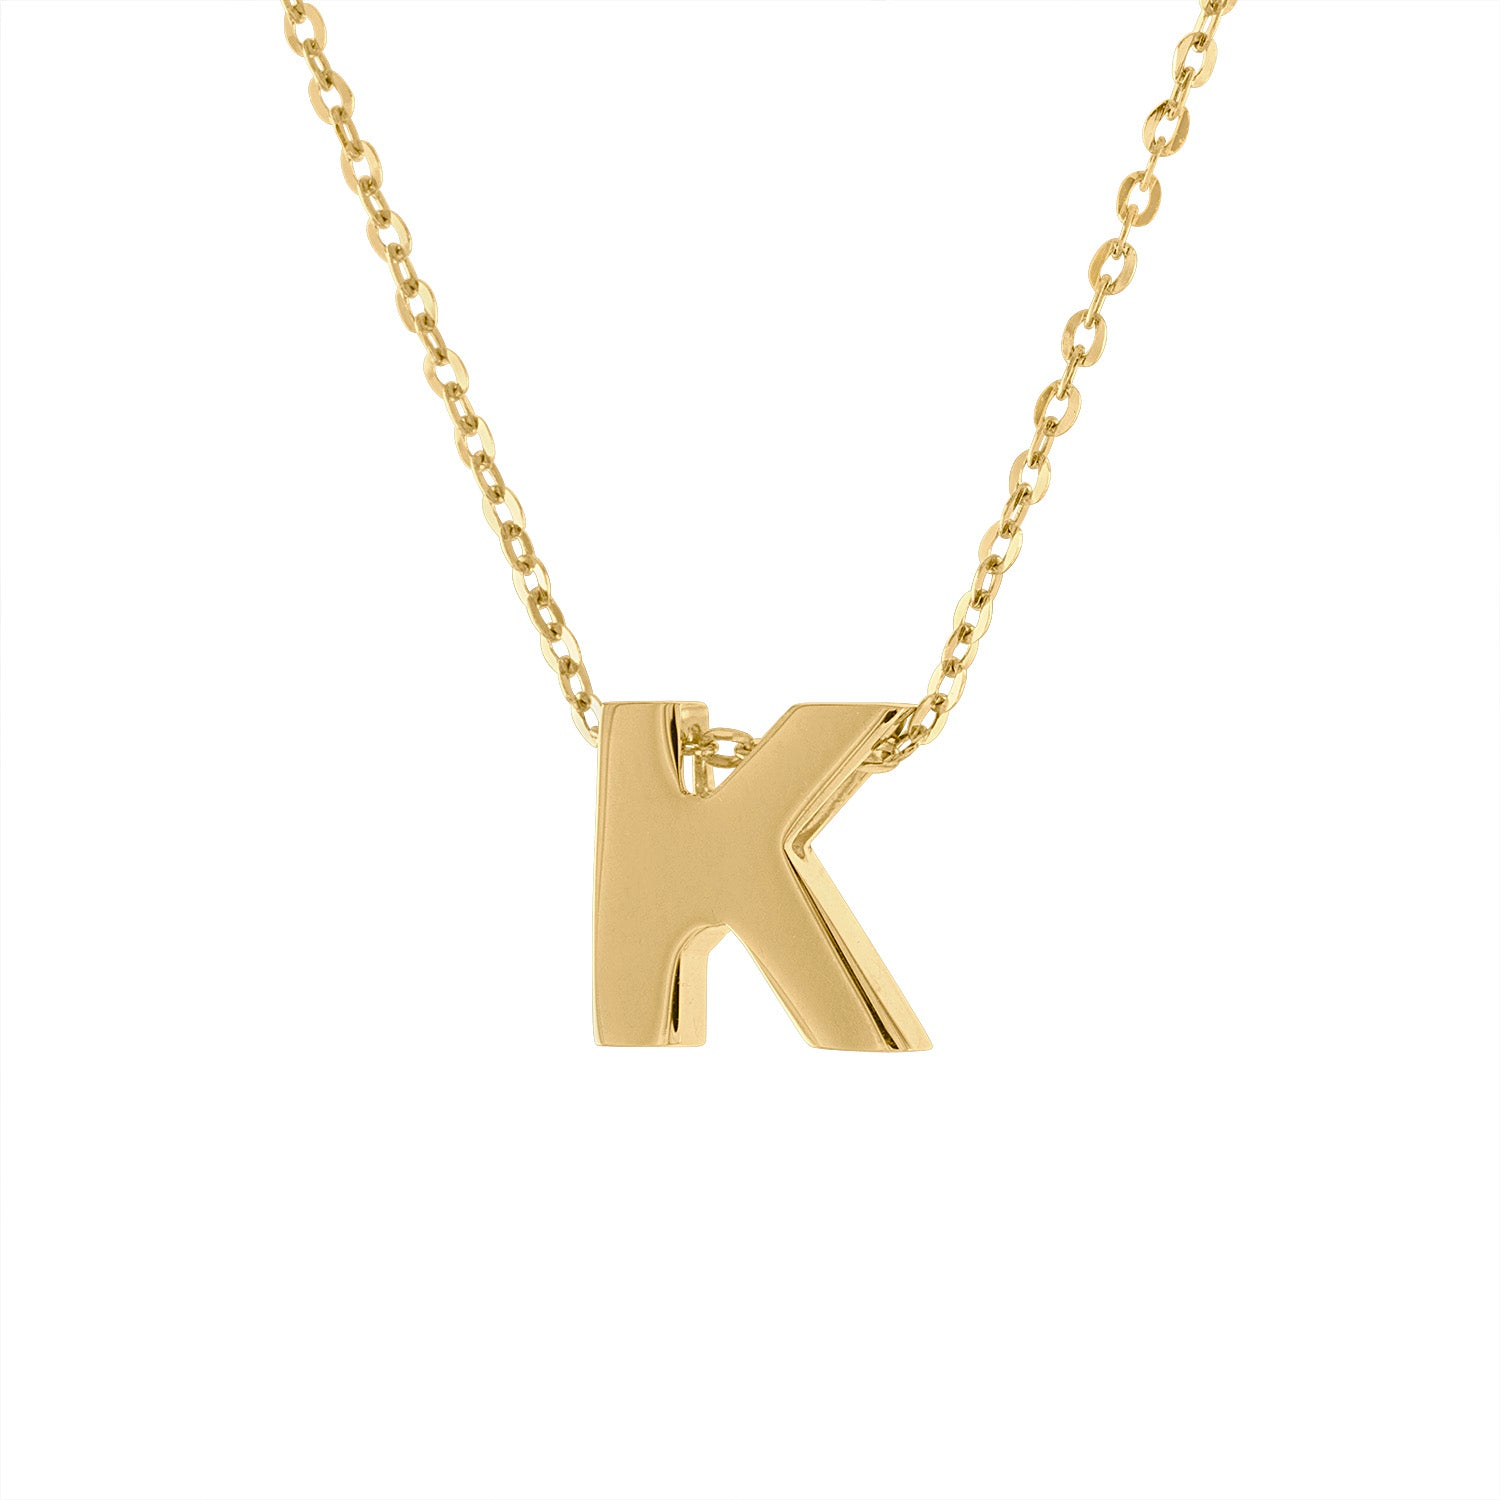 14k Yellow Gold plain initial K necklace